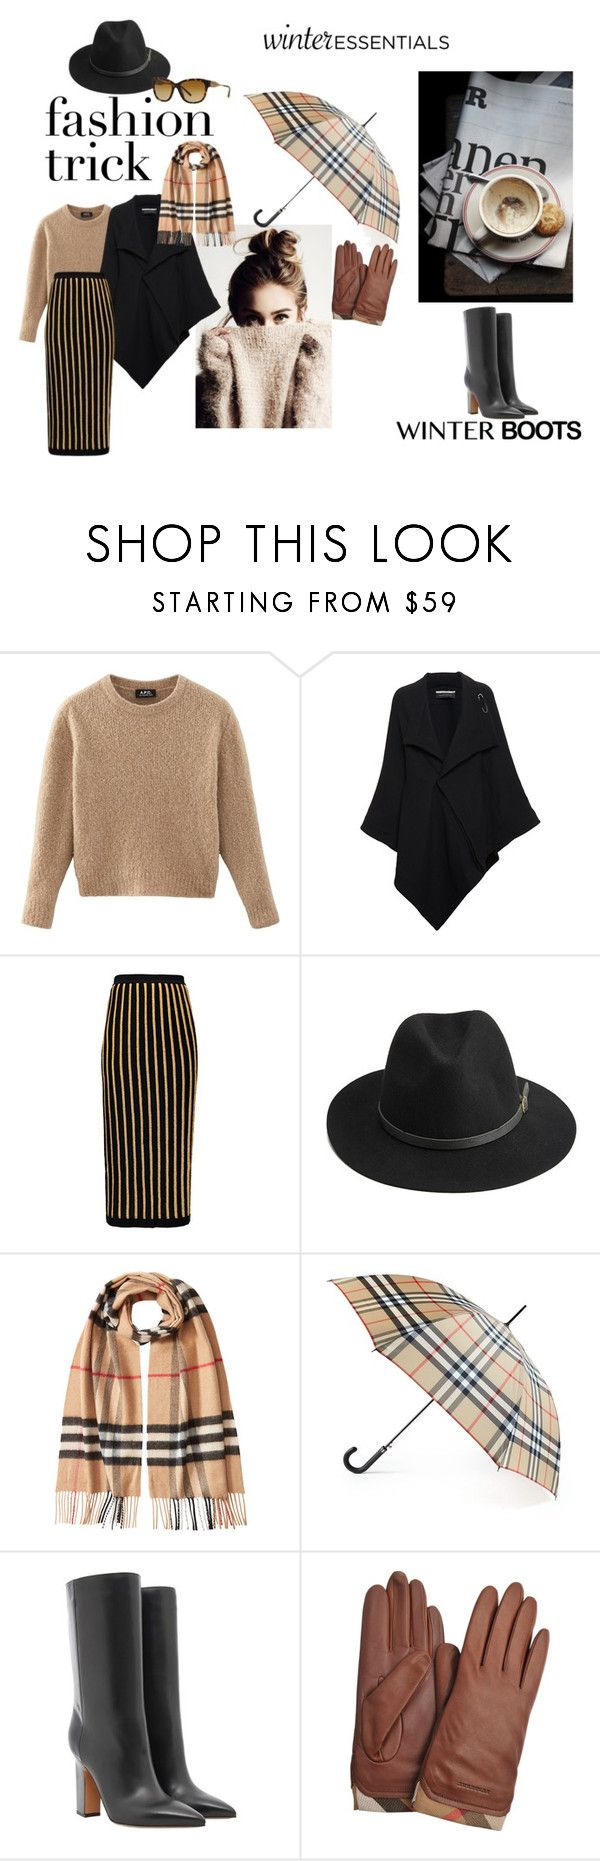 """Untitled #108"" by popescu-io on Polyvore featuring Roland Mouret, Balmain, BeckSöndergaard, Burberry and Valentino"